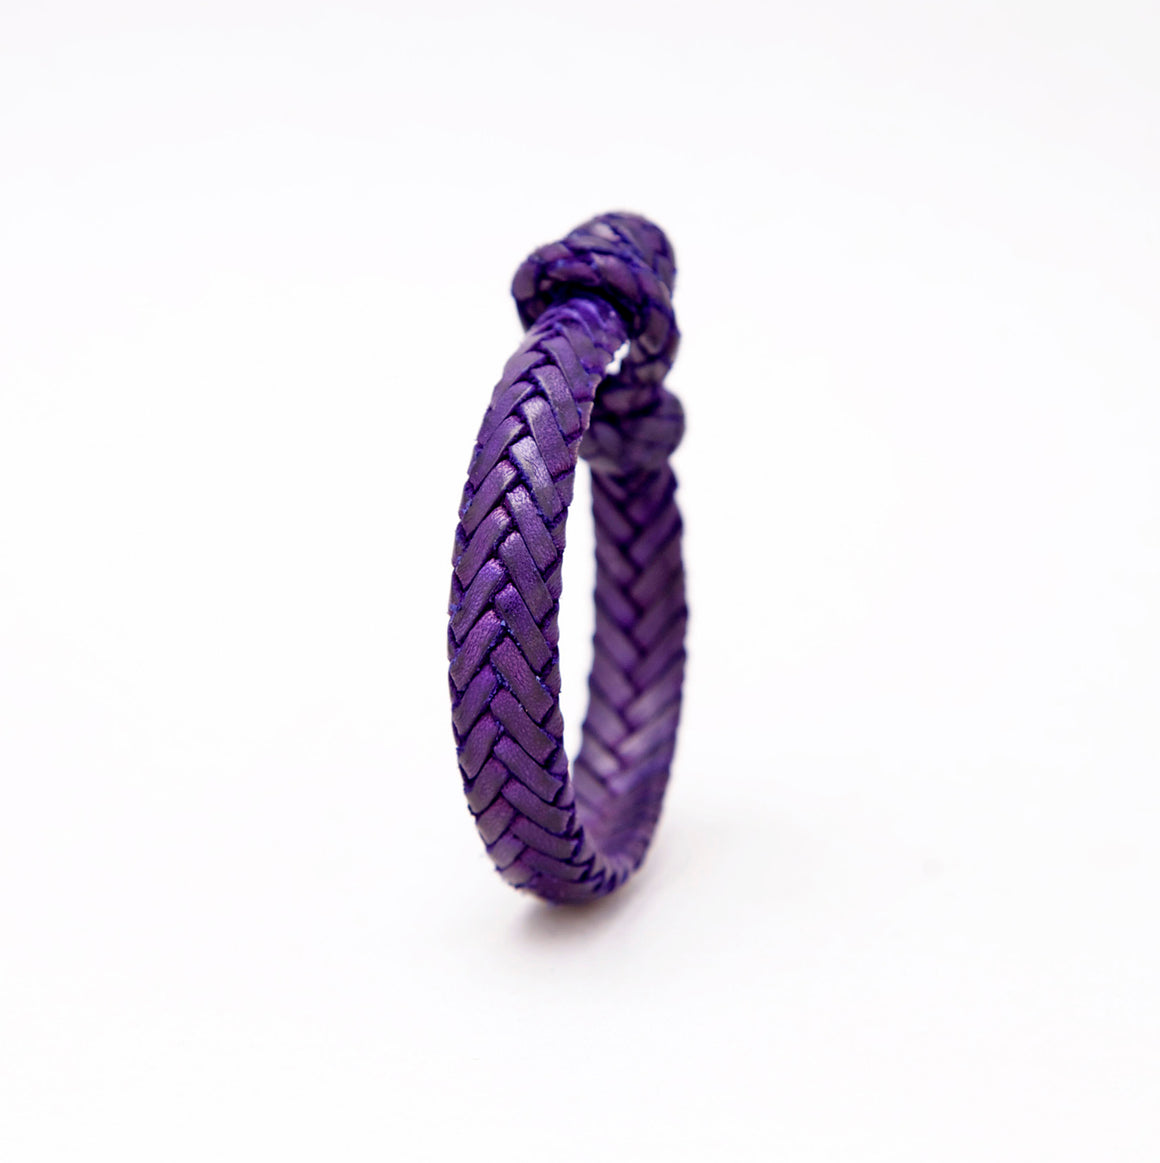 FLAT FISH BONE LEATHER BRACELET IN INDIGO